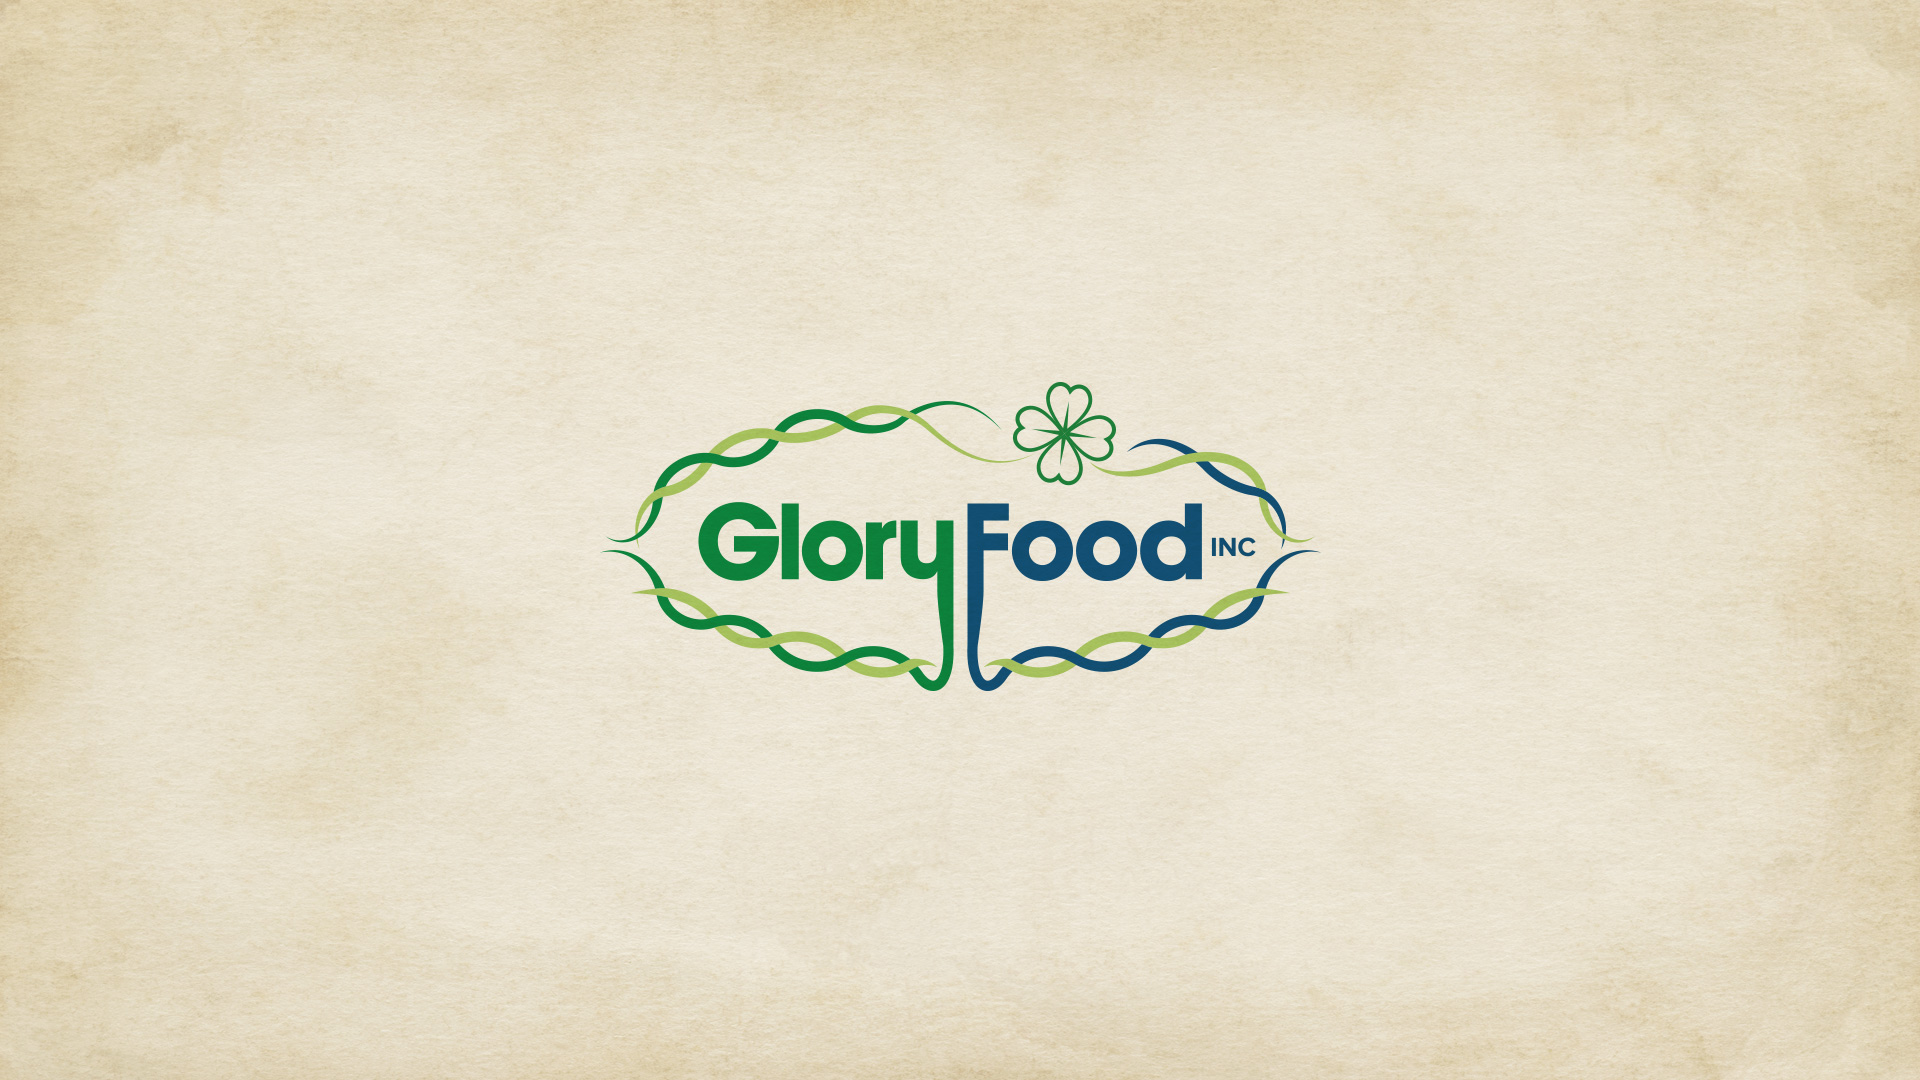 Glory Food Background Image